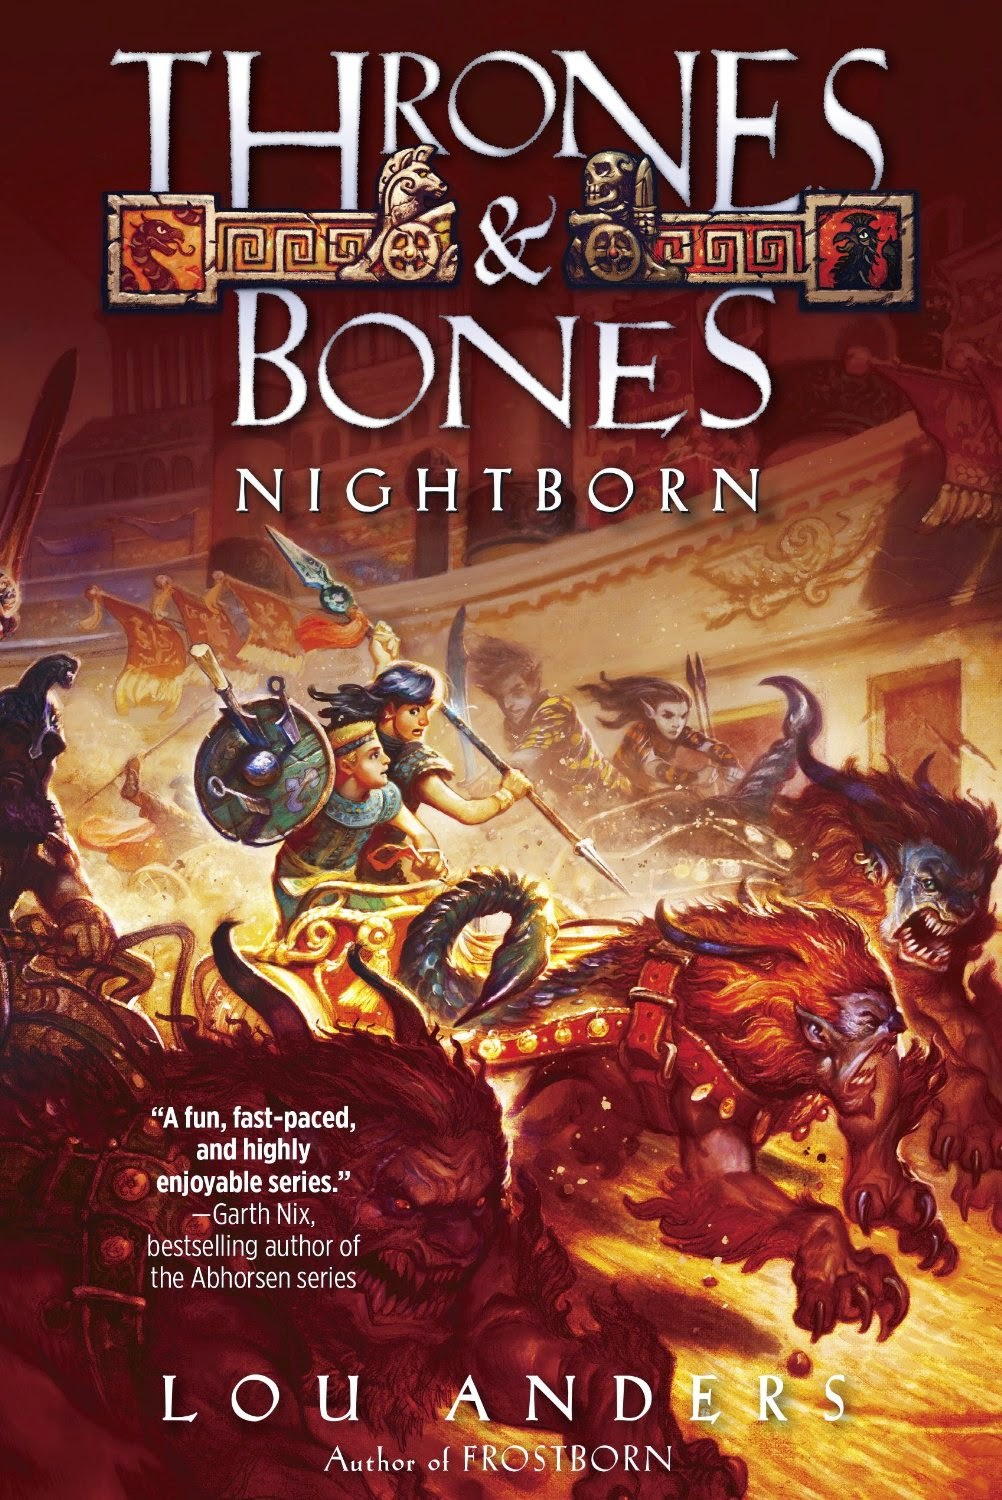 MG Book Review: Nightborn by Lou Anders (plus ARC giveaway)